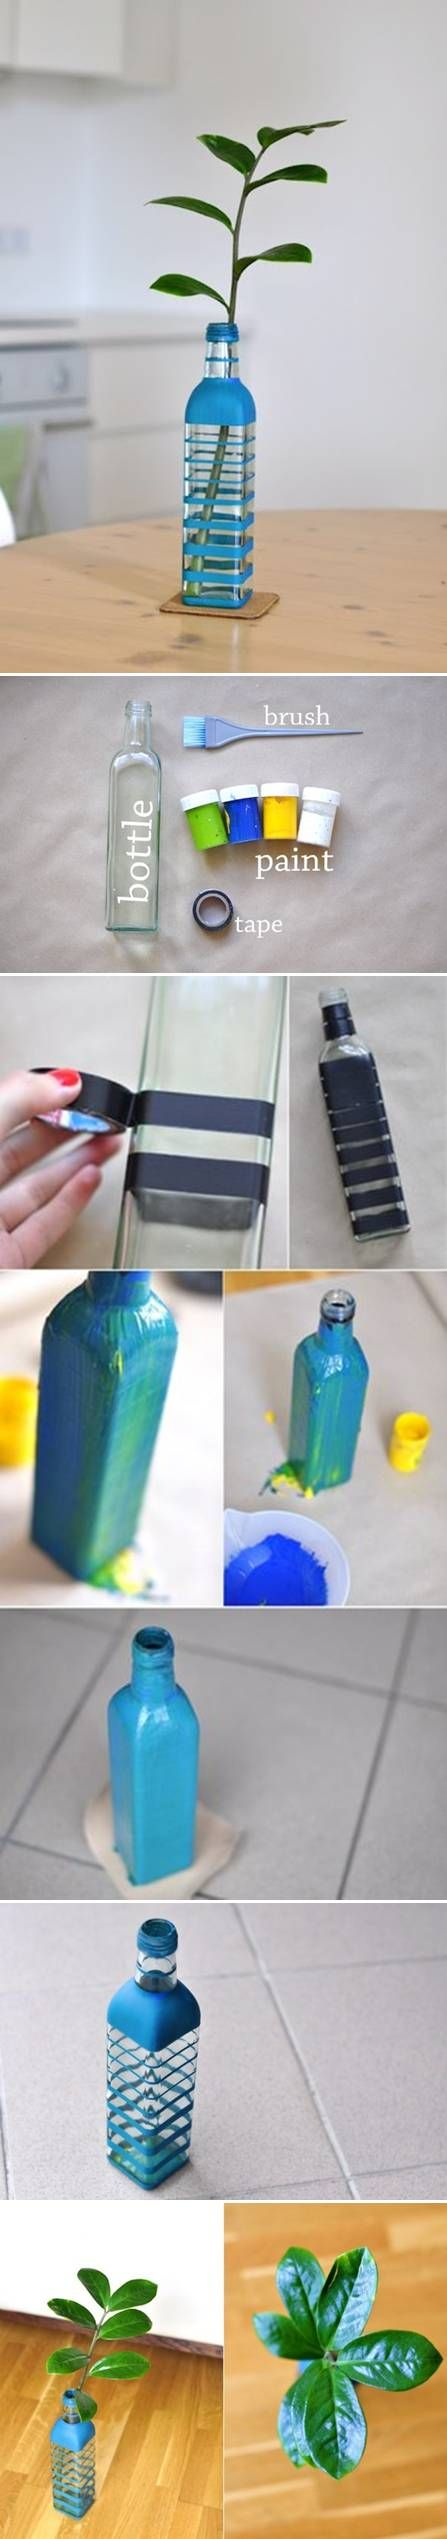 DIY Colored Bottle Vase